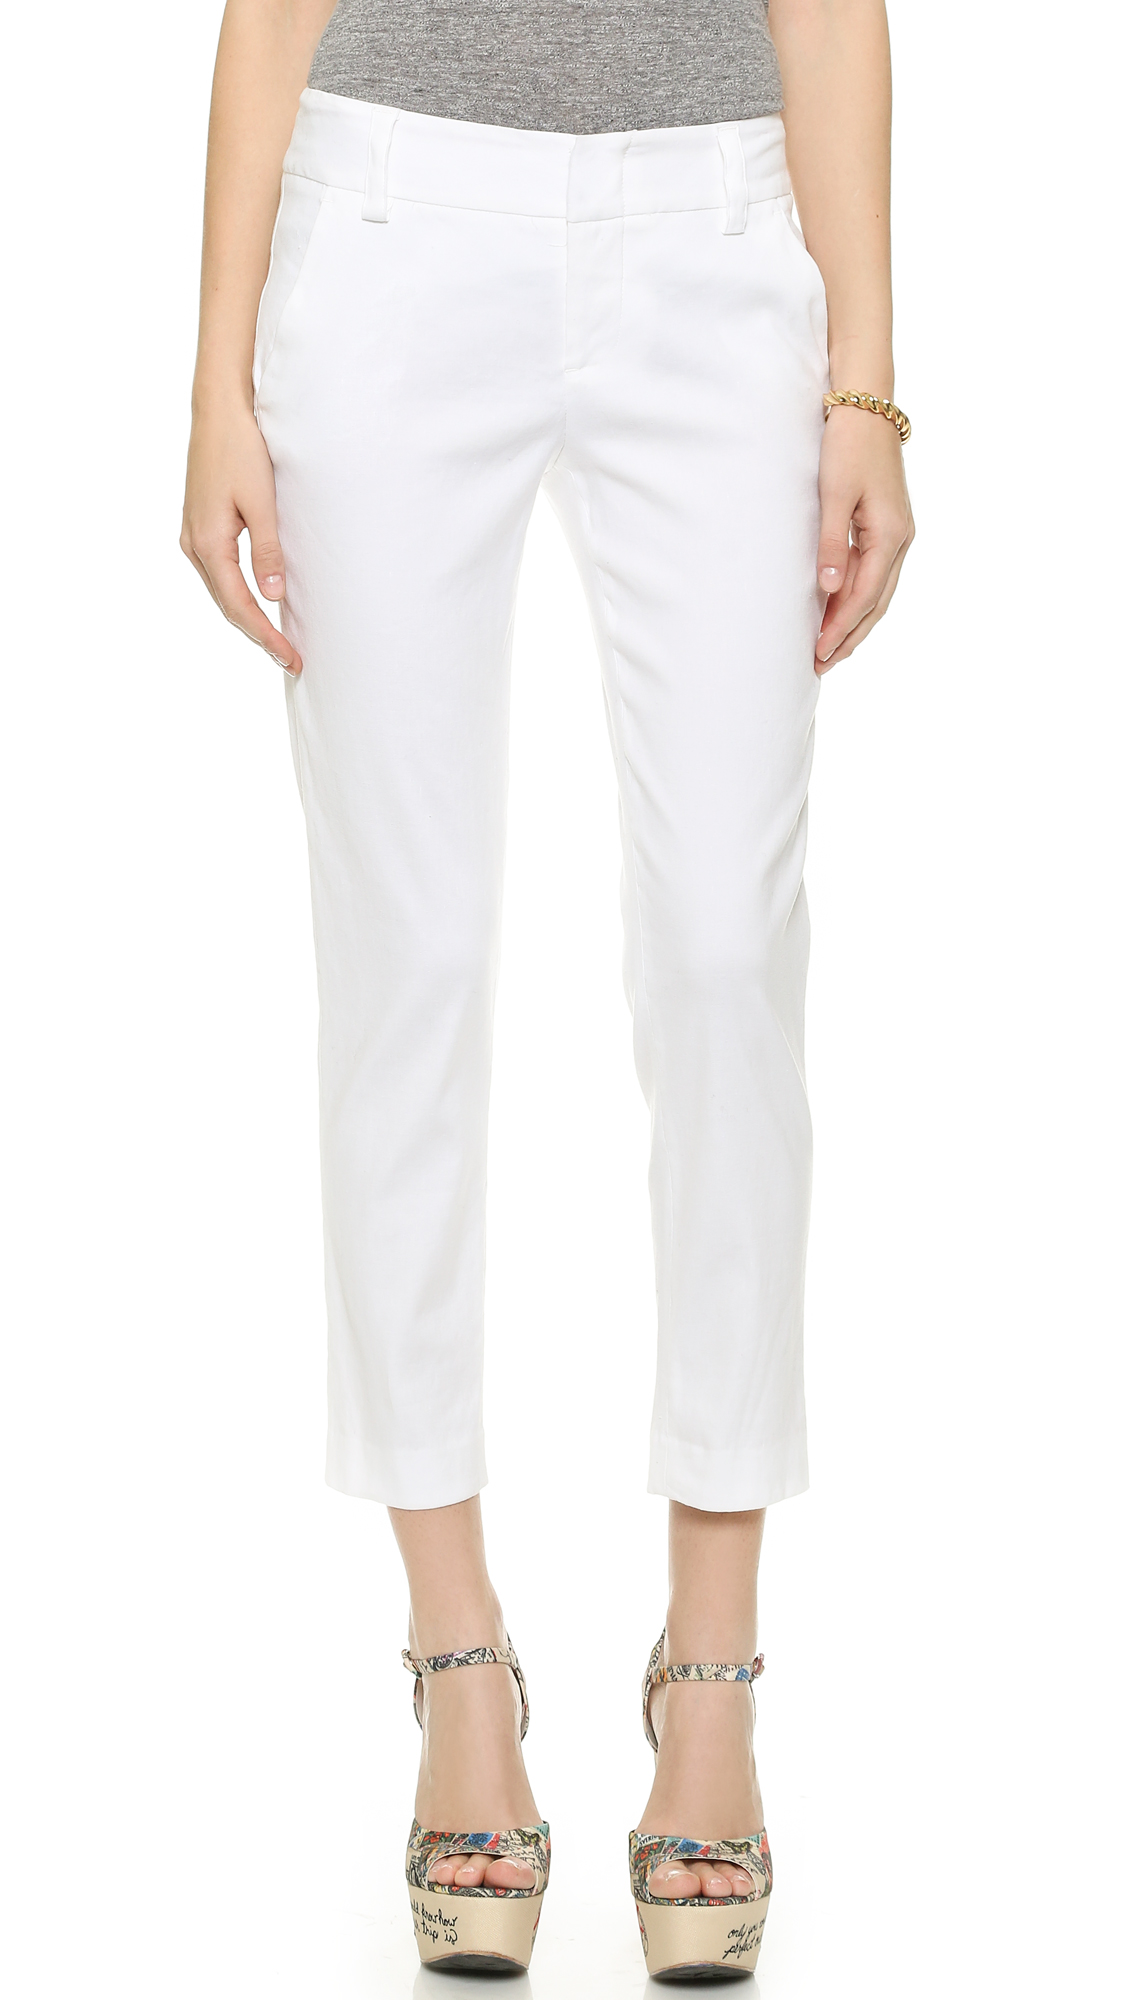 Alice + Olivia Stacey Cropped Slim Pants, White